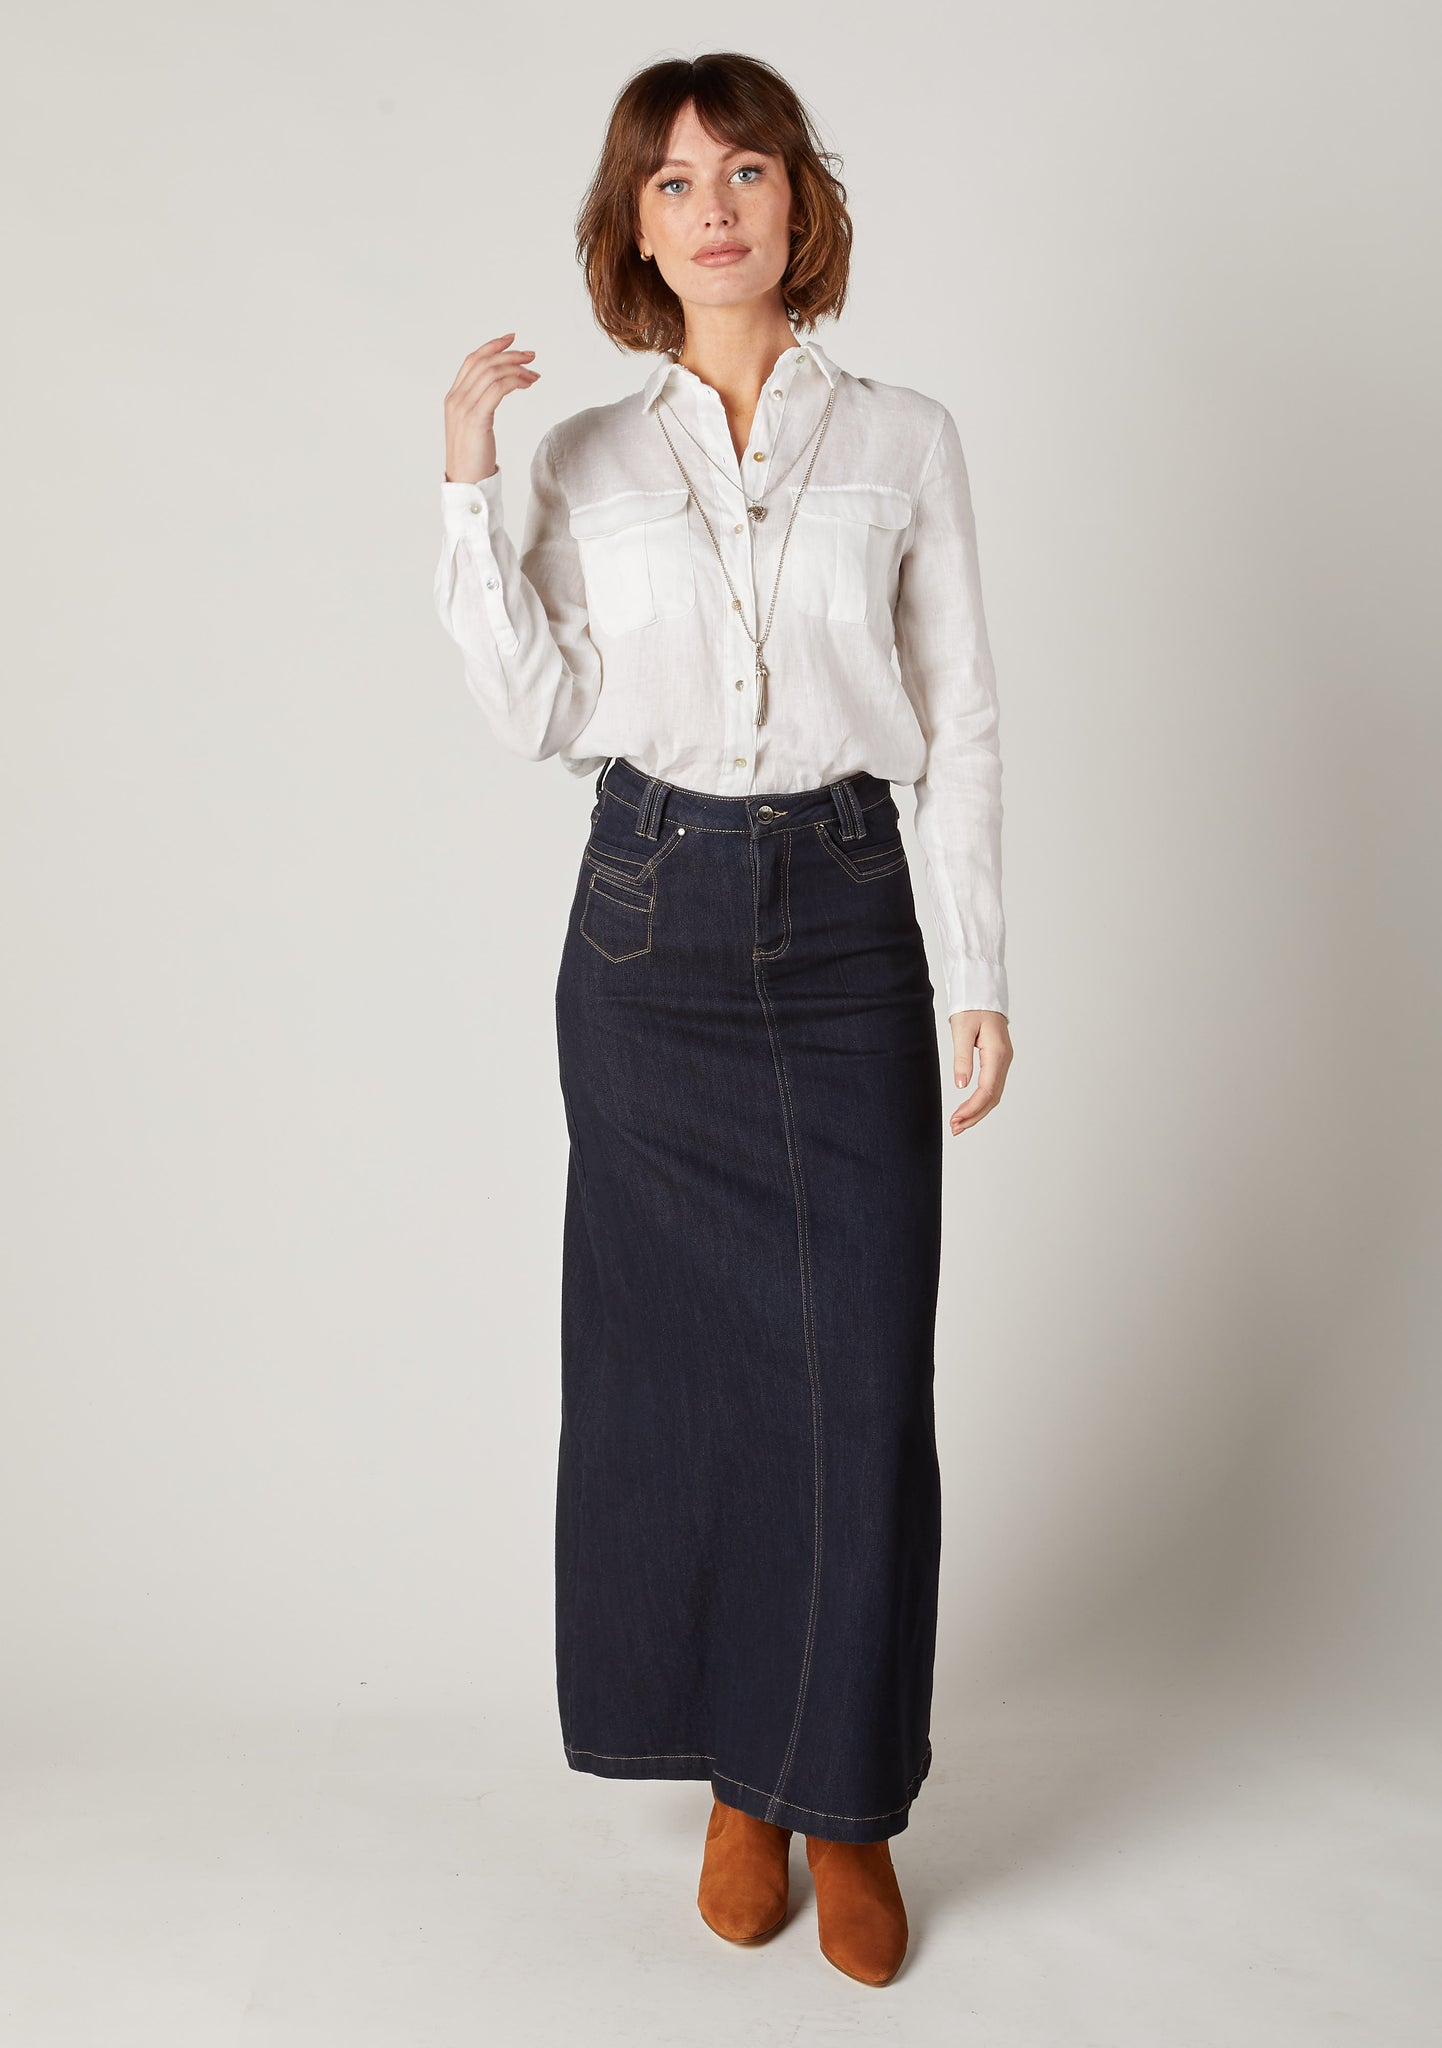 Full-length front pose of ladies modest ankle length dark wash jean skirt showing front zip fastening and pockets